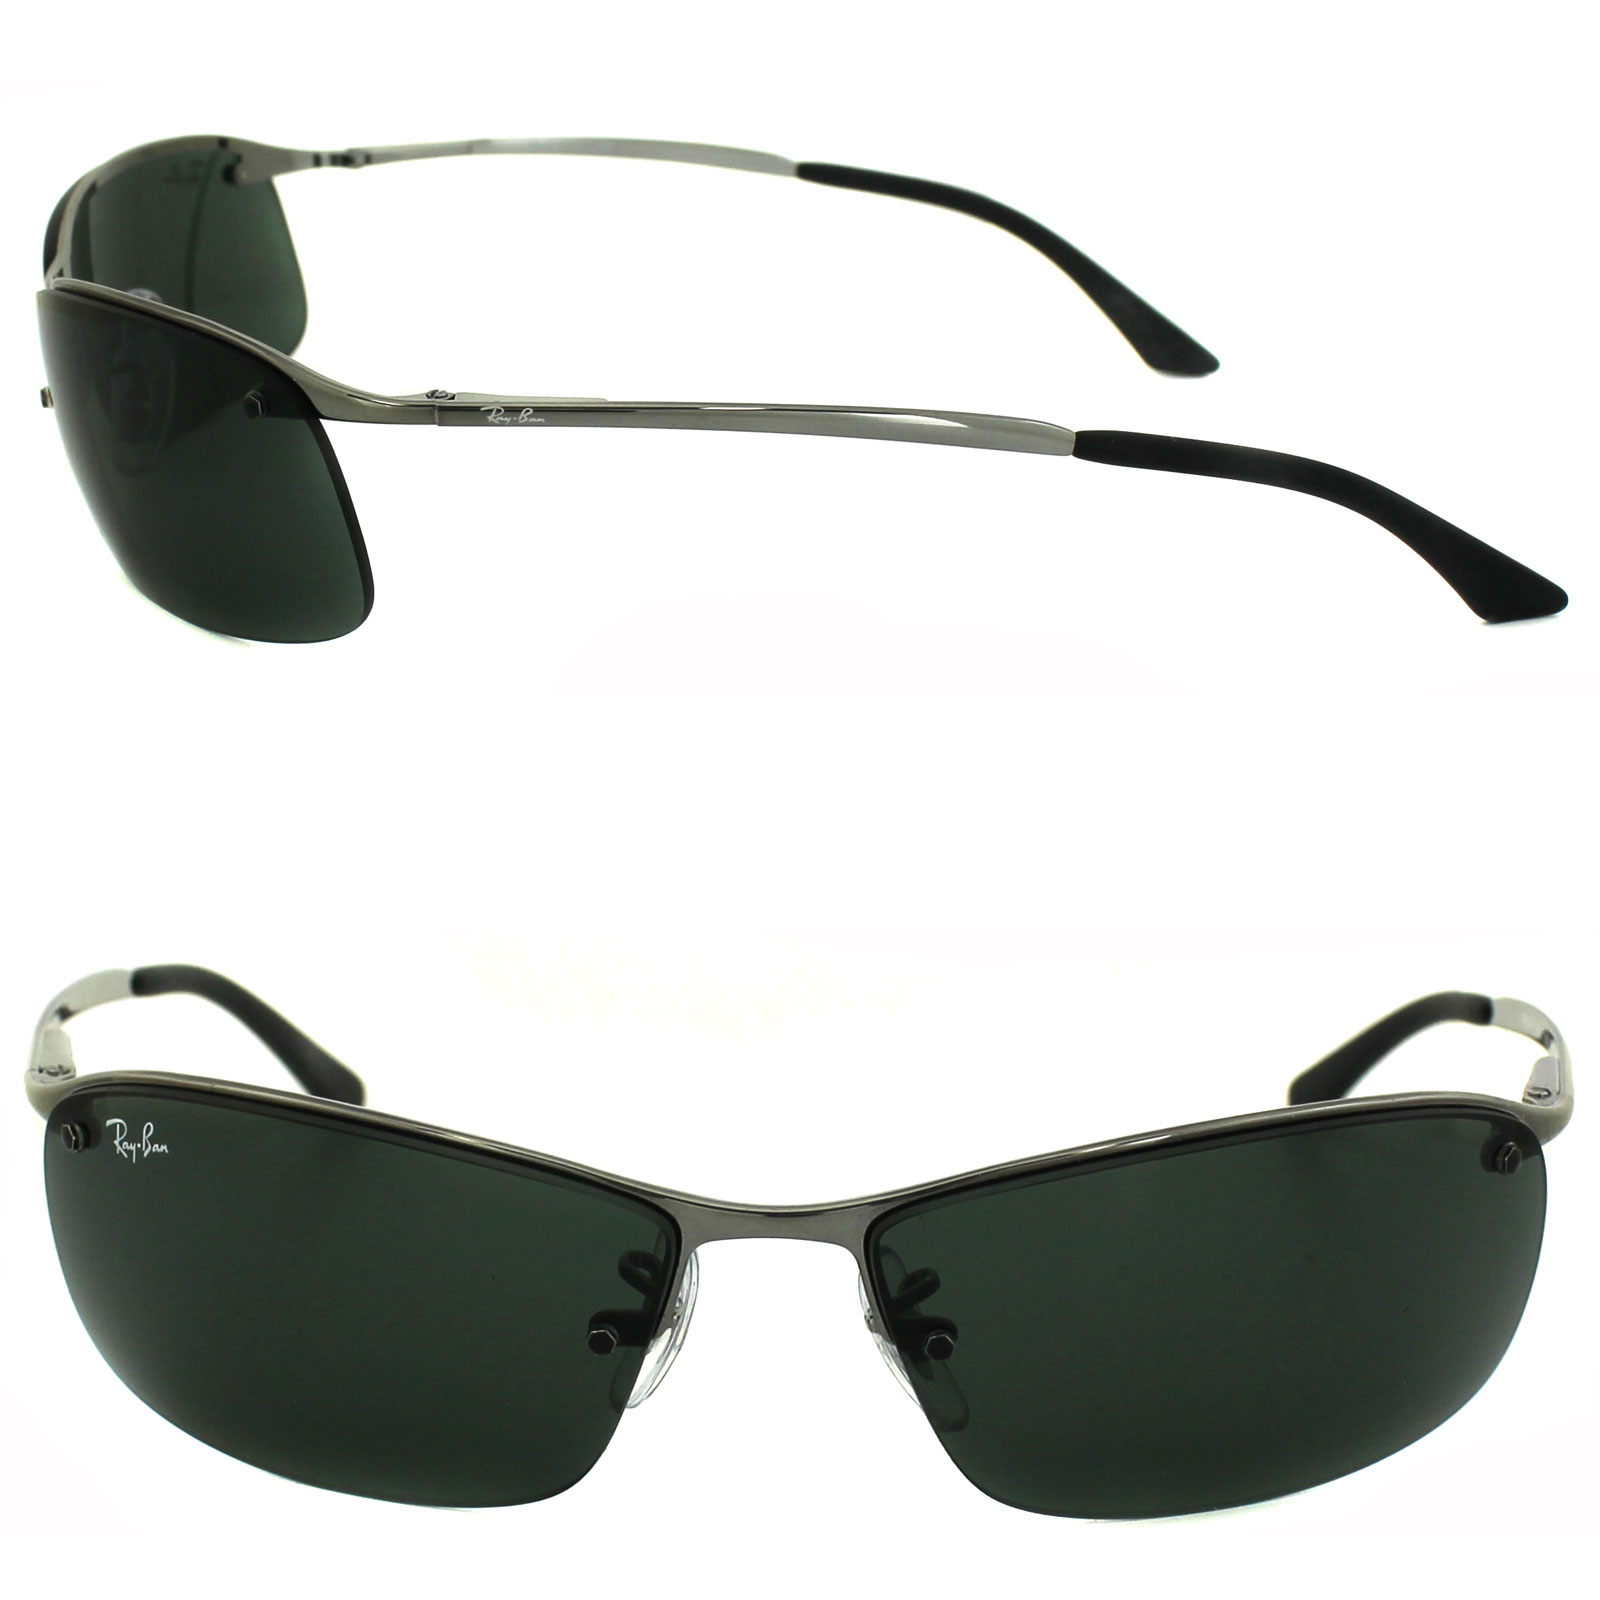 Delicieux ... Ray Ban Top Bar 3183 Sunglasses Thumbnail 2 ...